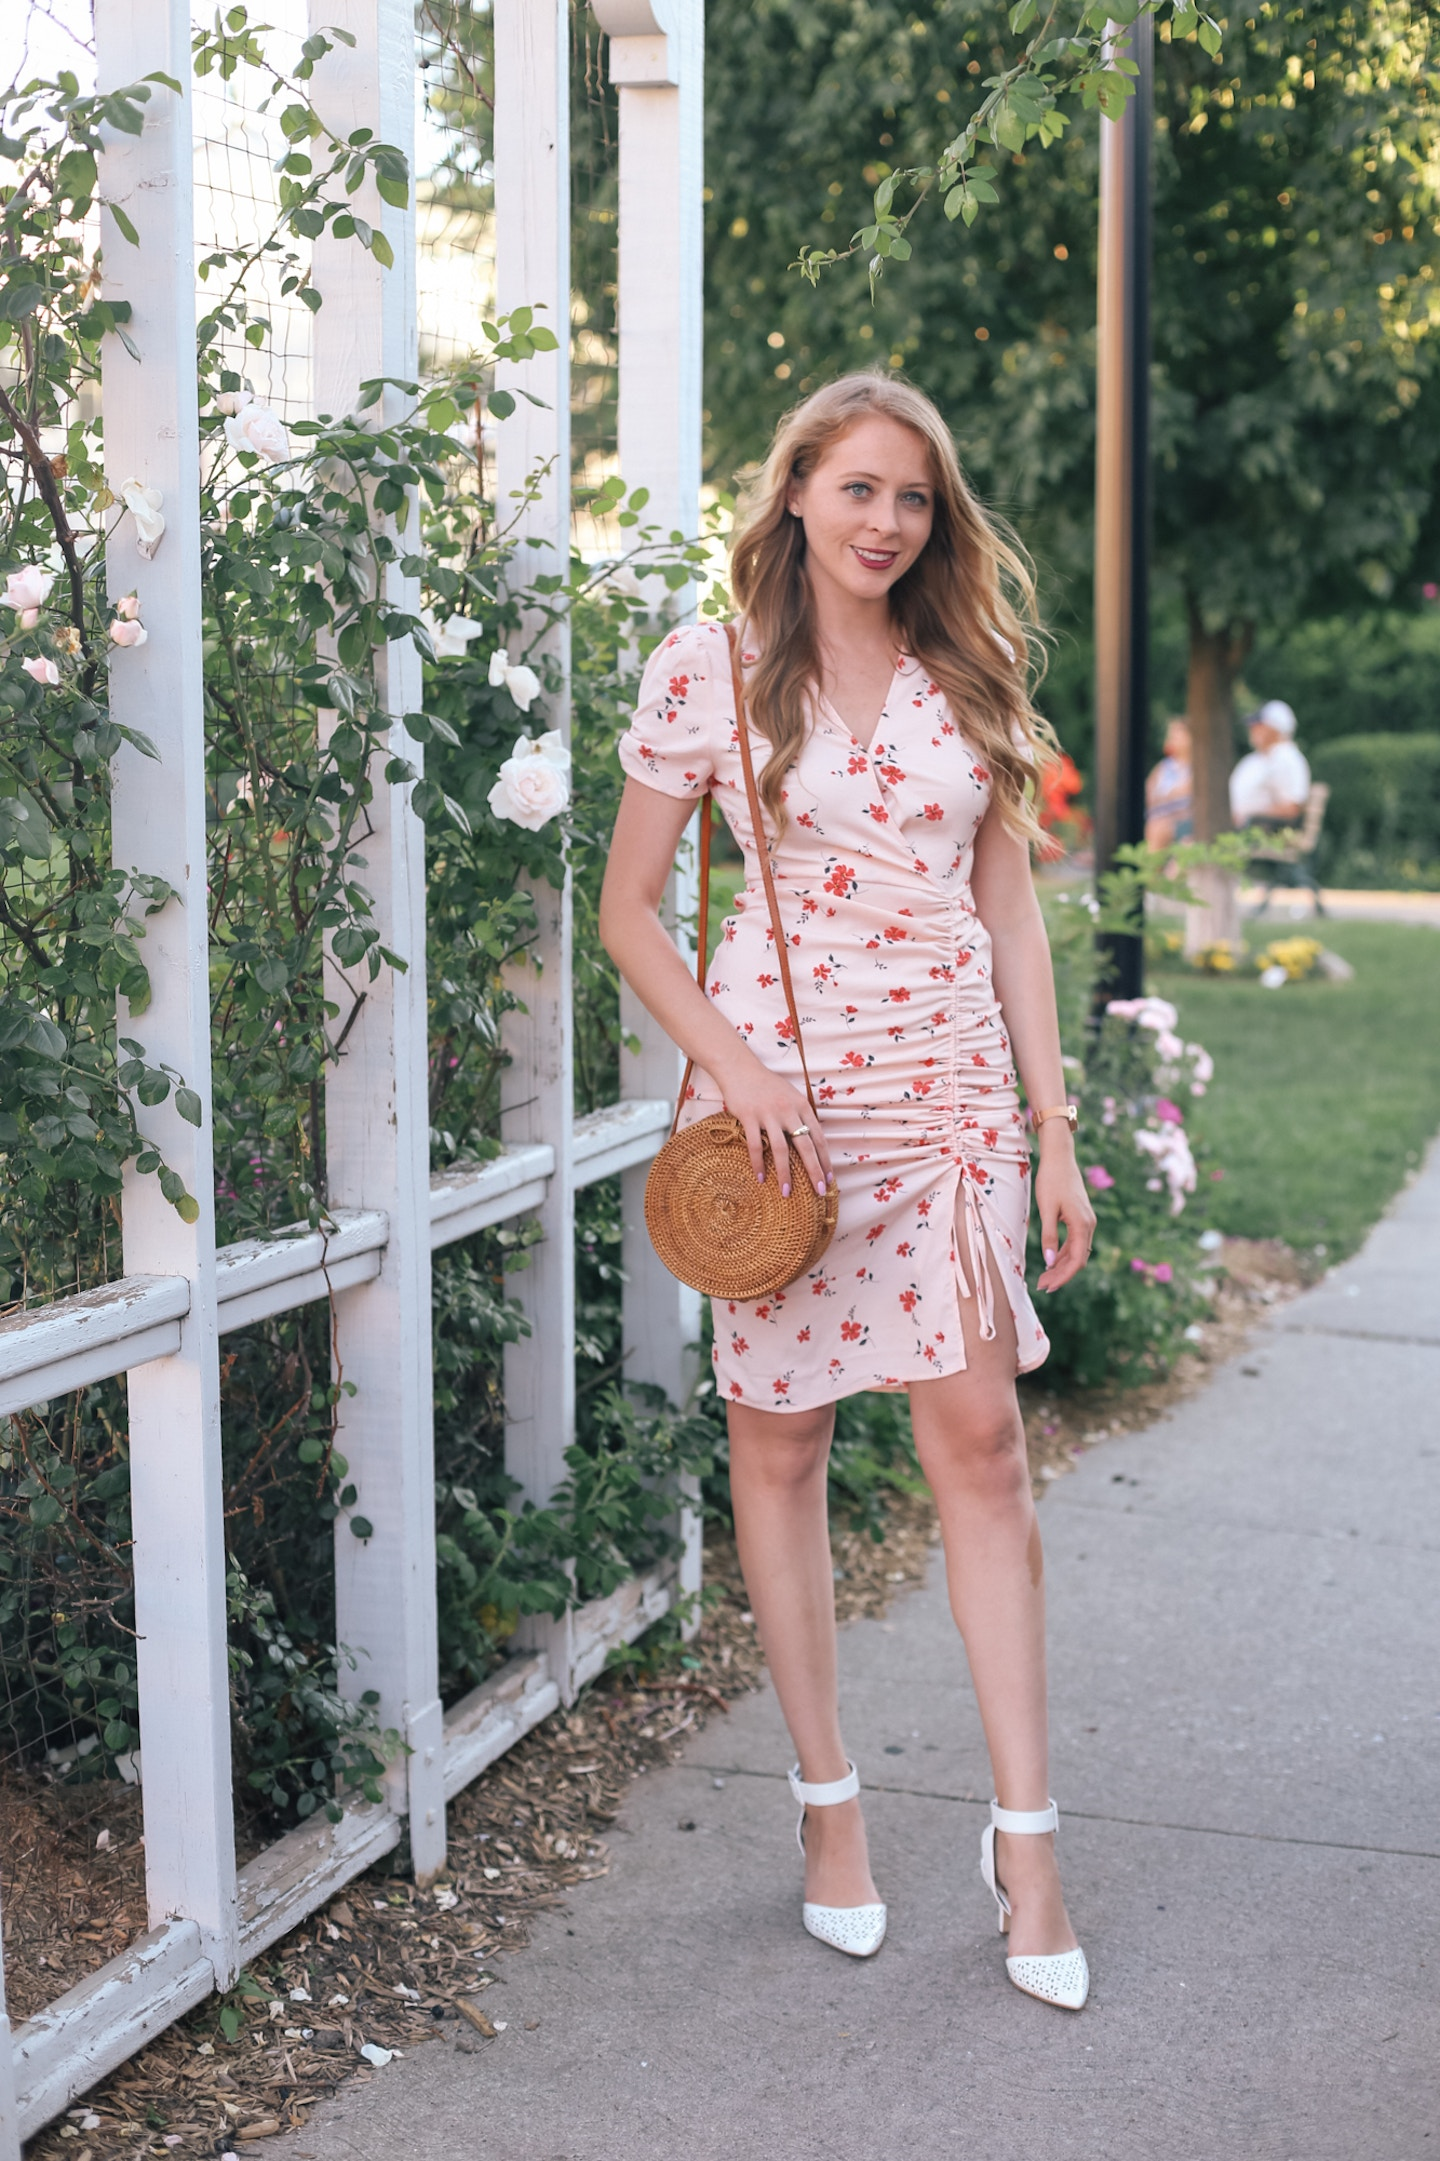 J.O.A. Cinch Front Dress: a cute cinched dress with a dainty rose print pairs perfectly with white pumps and a rattan round bag for a late summer look.